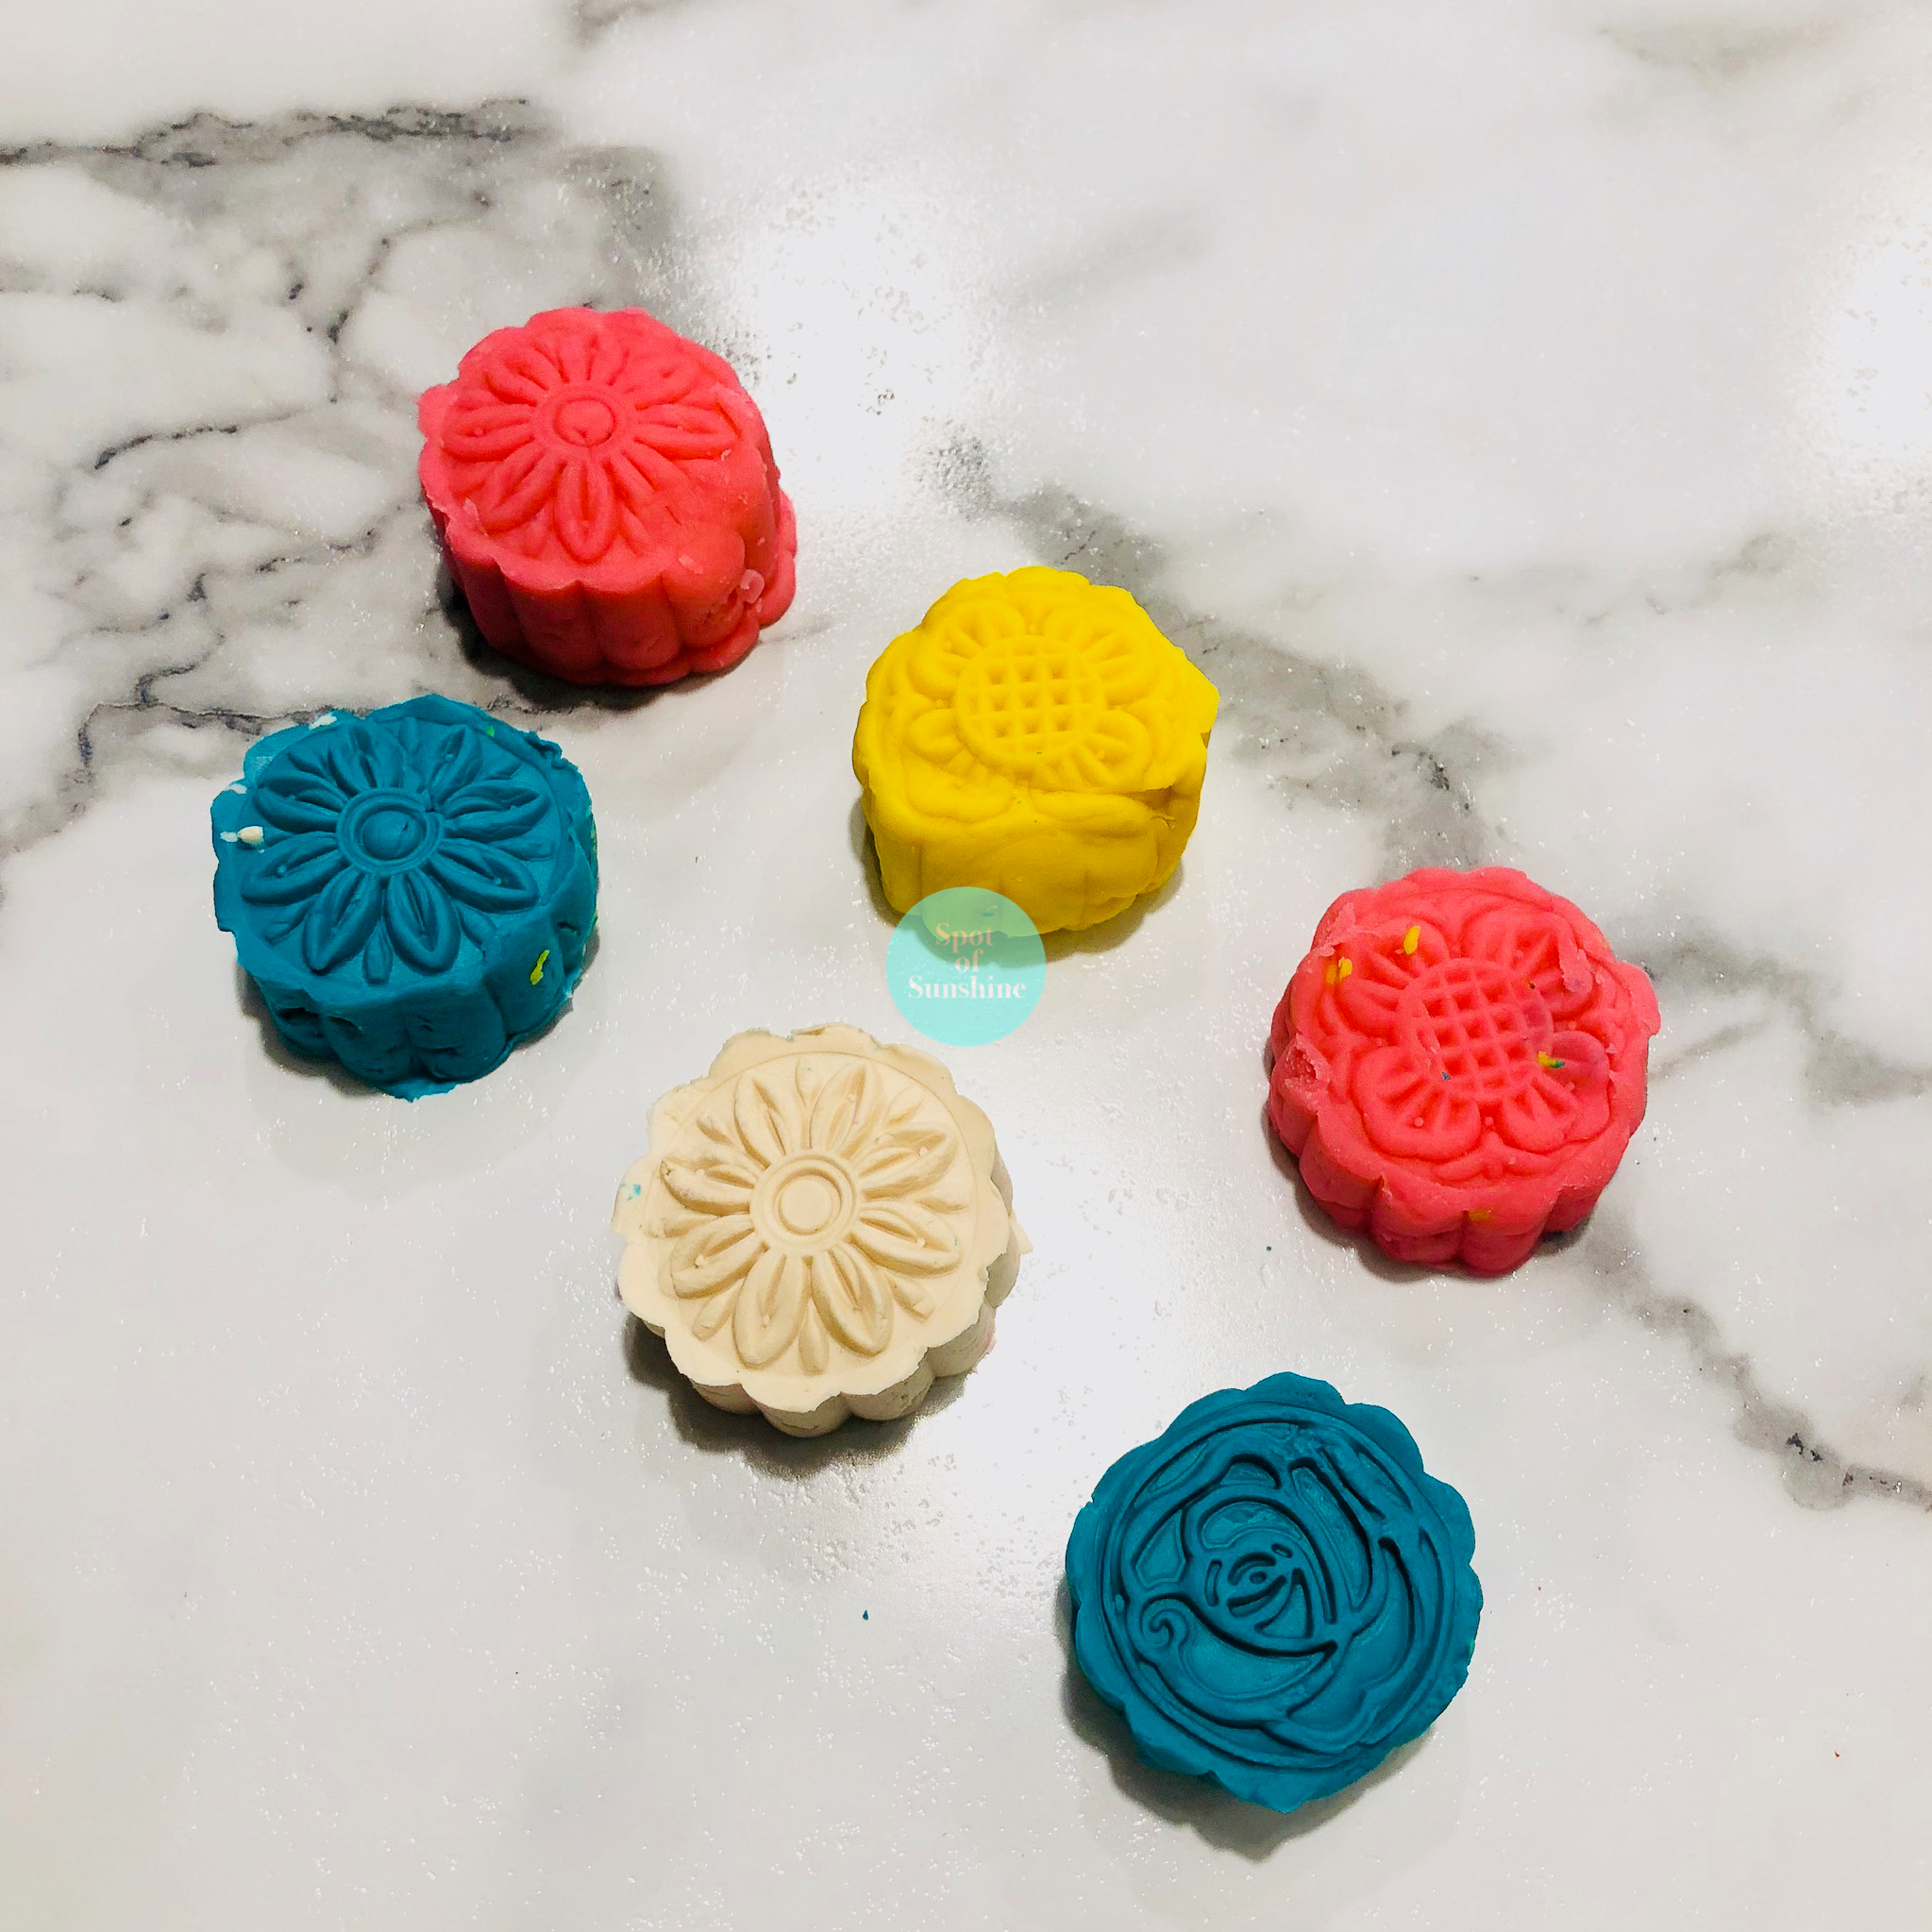 playdough moon cakes mid autumn festival fun activities kids toddlers preschool Chinese